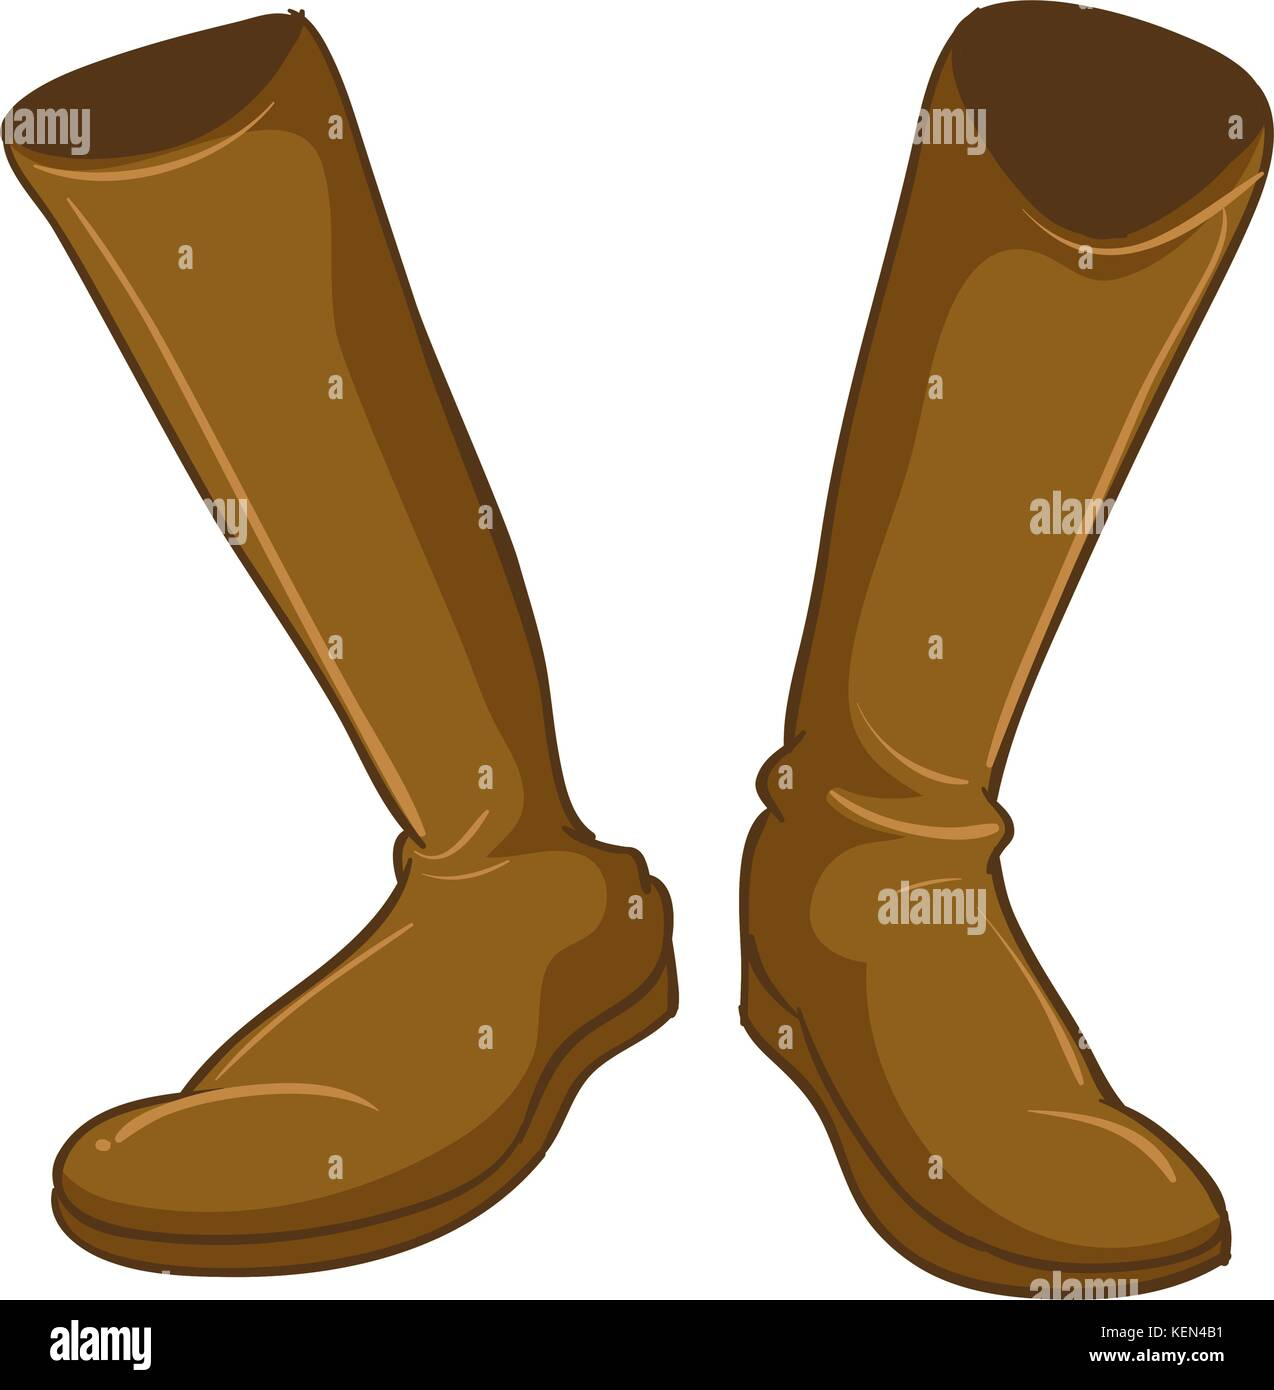 Illustration of a pair of a fashionable brown boots on a white background - Stock Vector